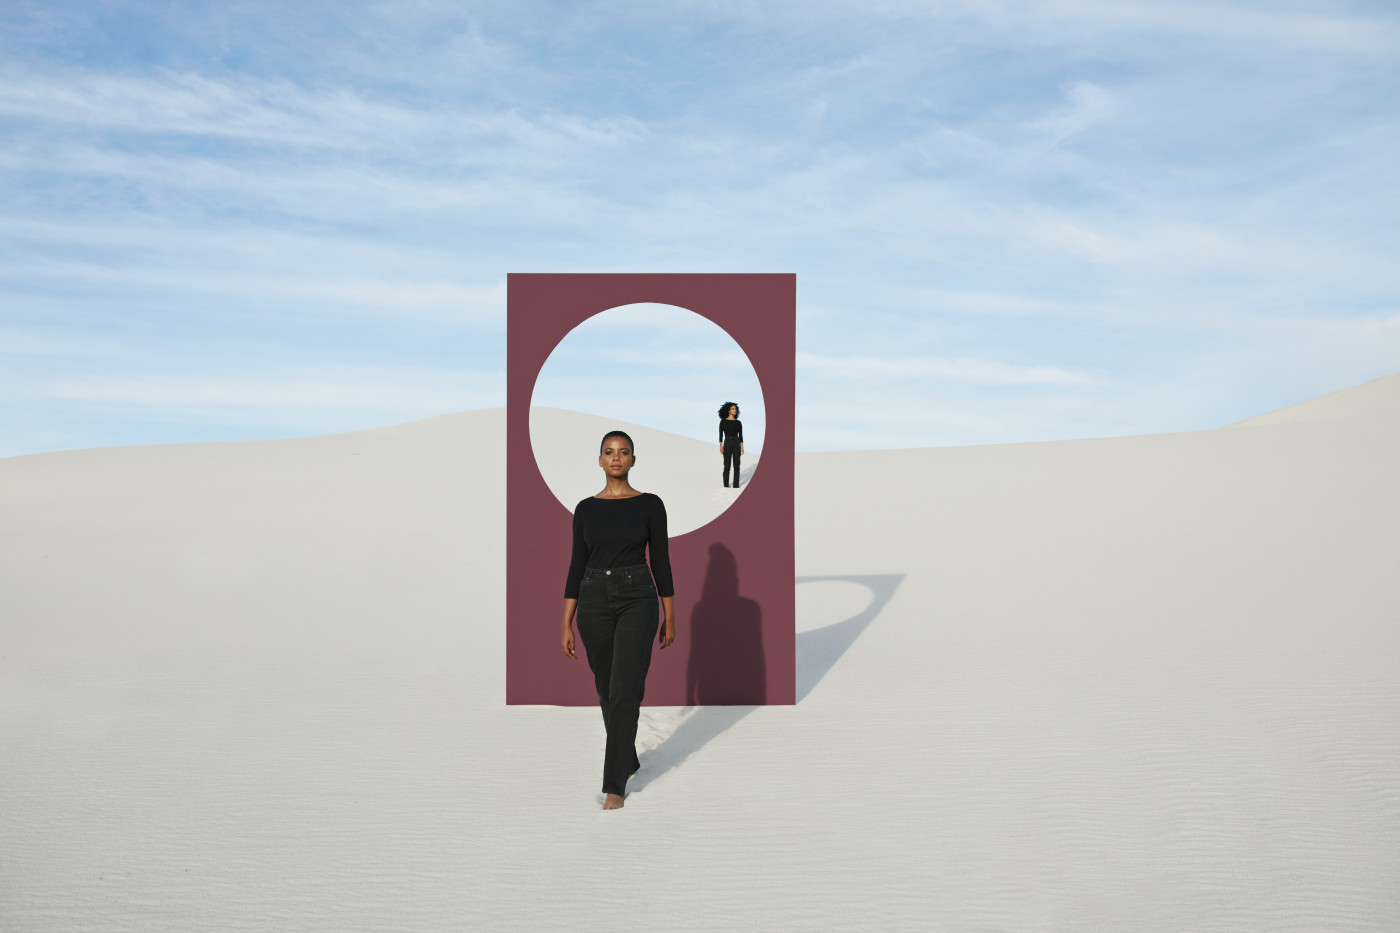 Young models with portal standing at desert against sky